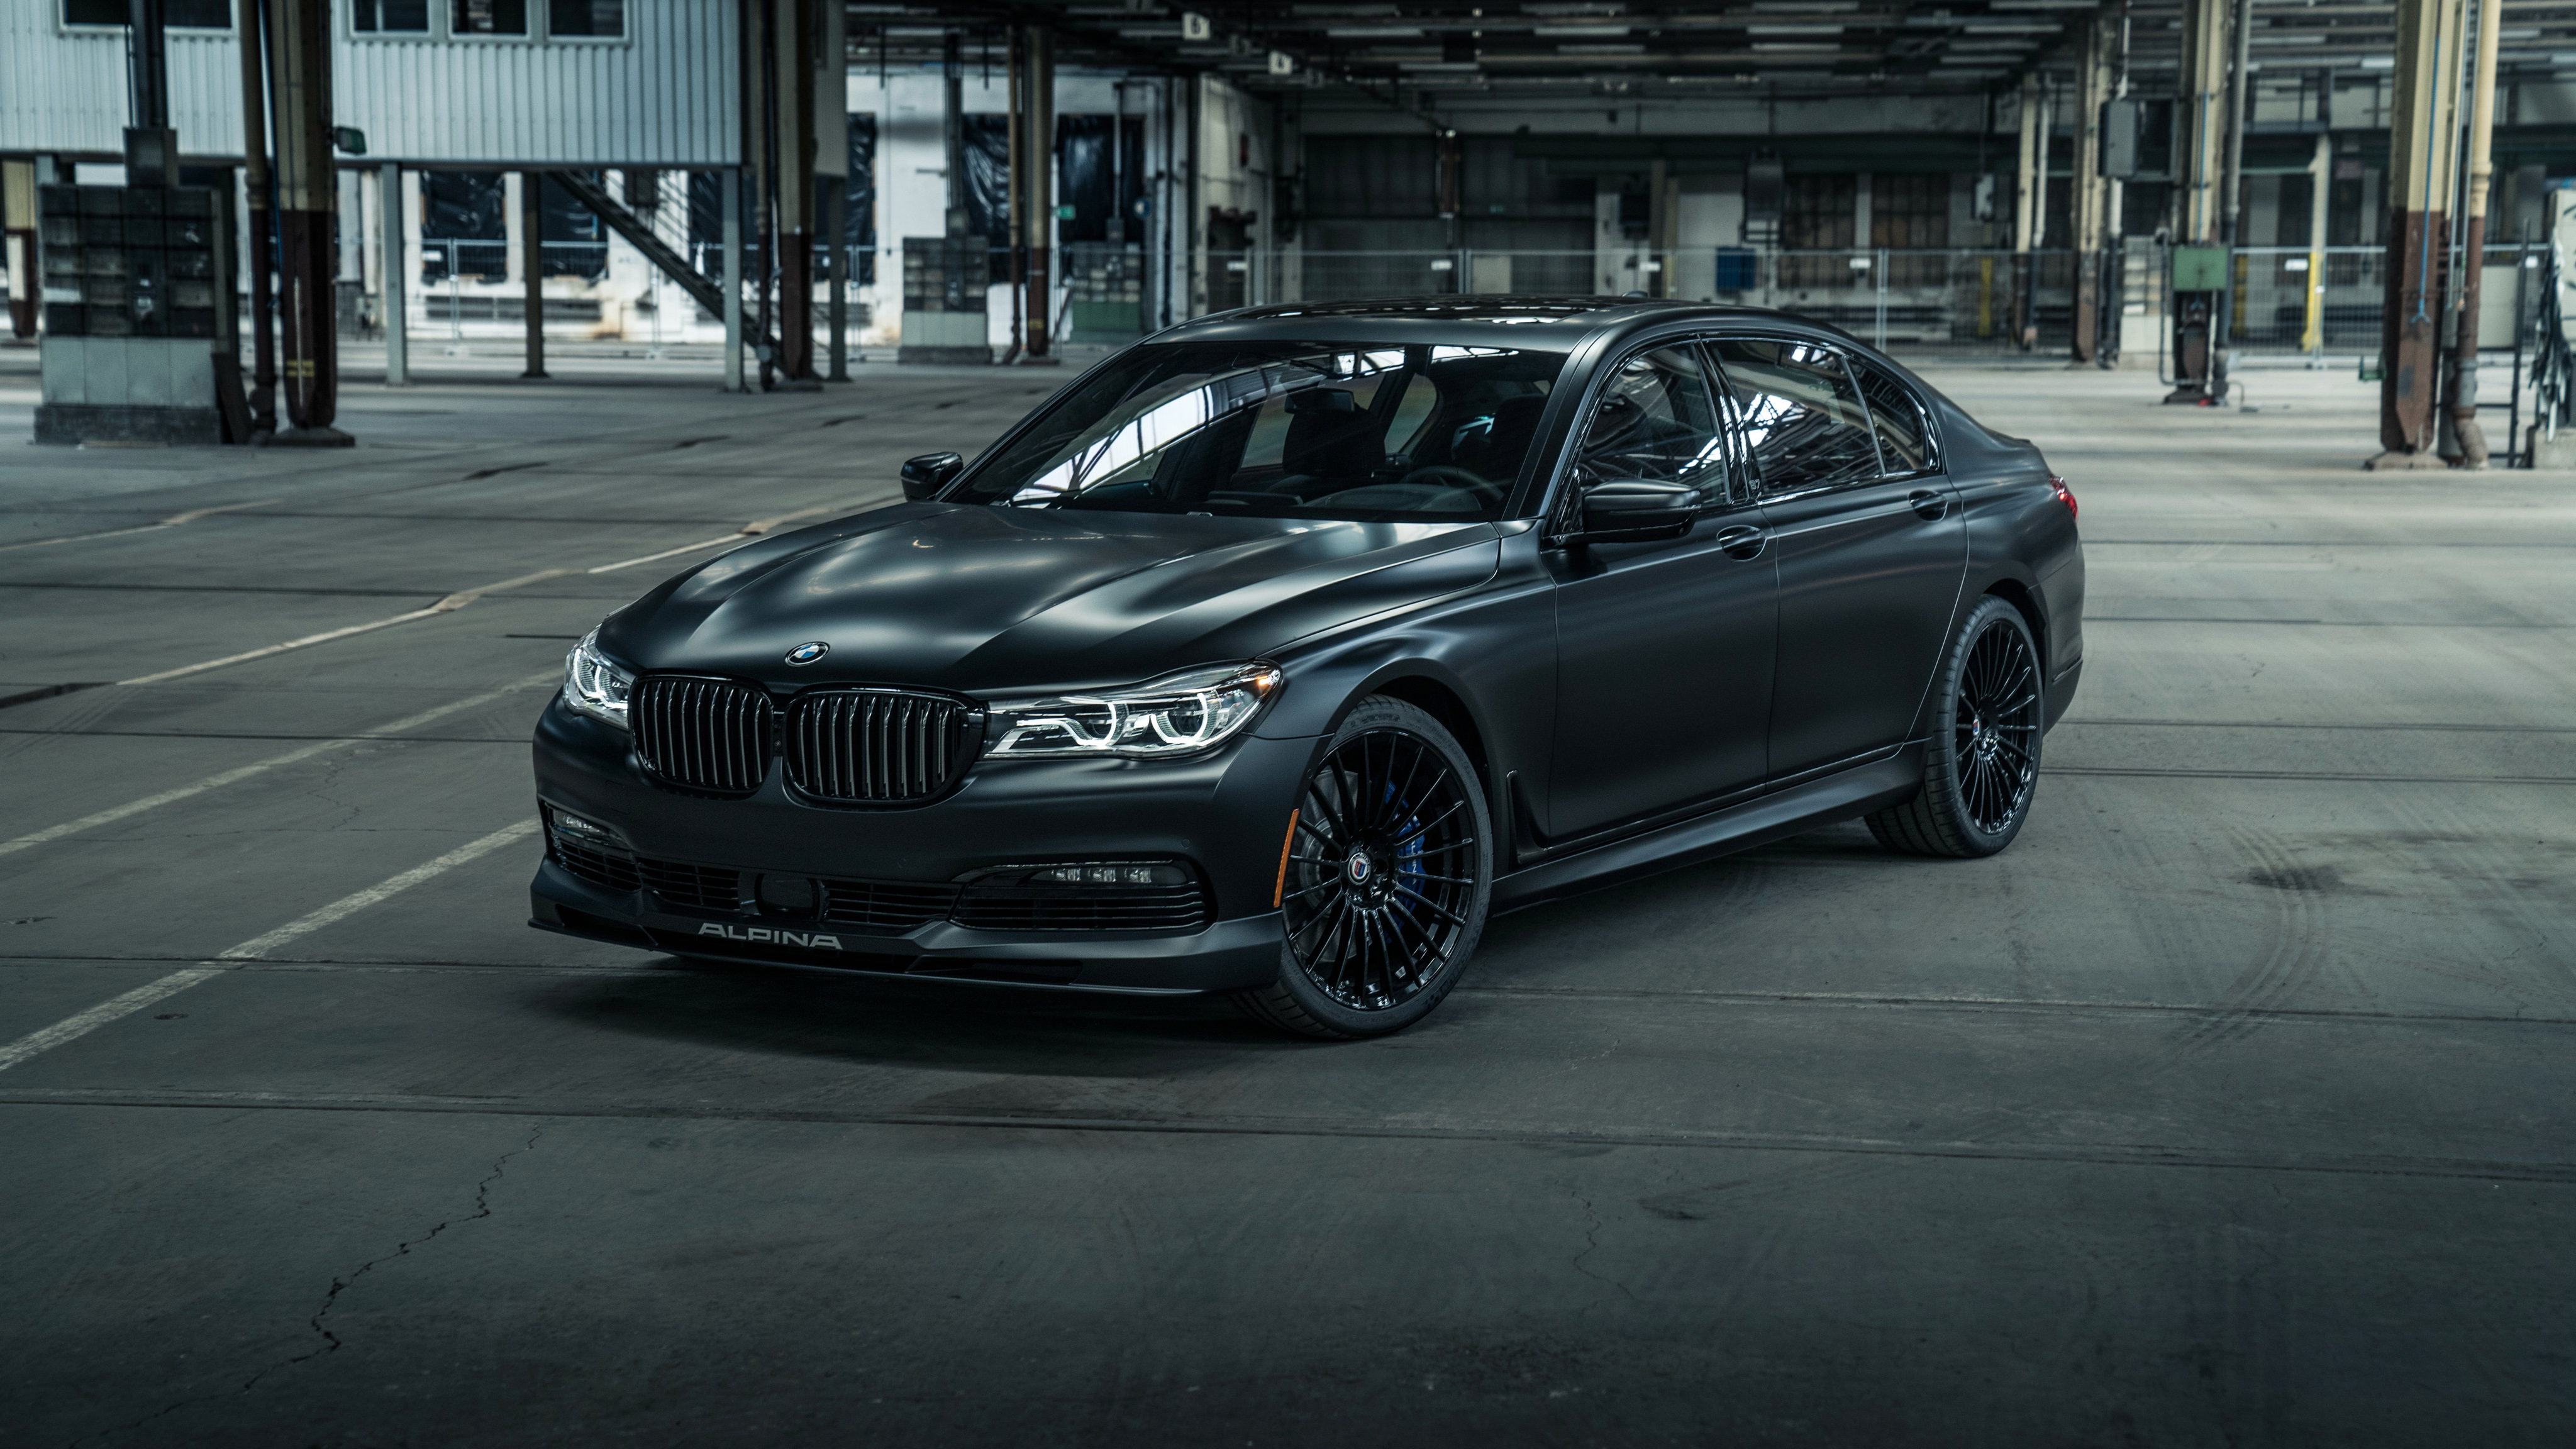 2018 BMW Alpina B7 Bi-Turbo Exclusive Edition 4K 2 ...